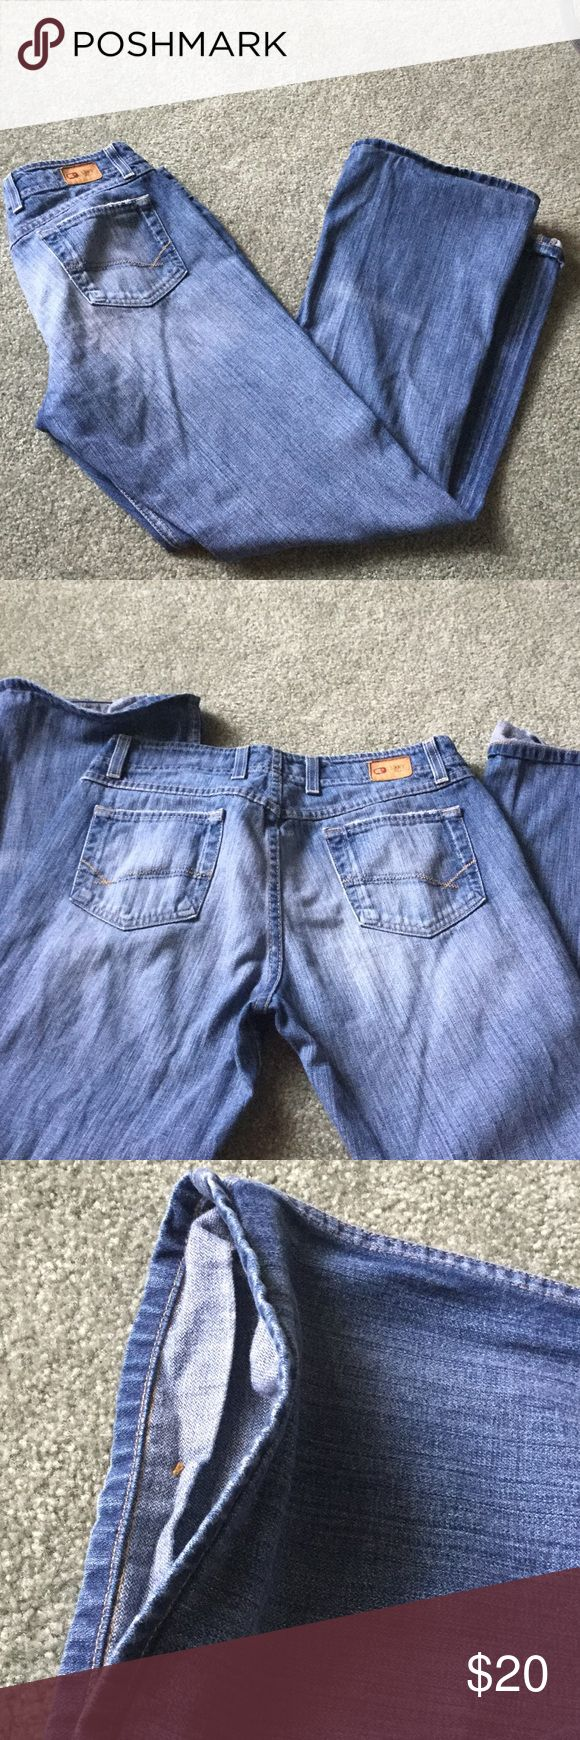 """Ladies BKE jeans Sassy style . Can't find size. Fits like a 12. Has been altered to fit 5'5"""" but just folded it over so can be undone to fit taller. This altering was done at the Buckle store and I did not like it so very seldom worn. BKE Jeans Straight Leg"""